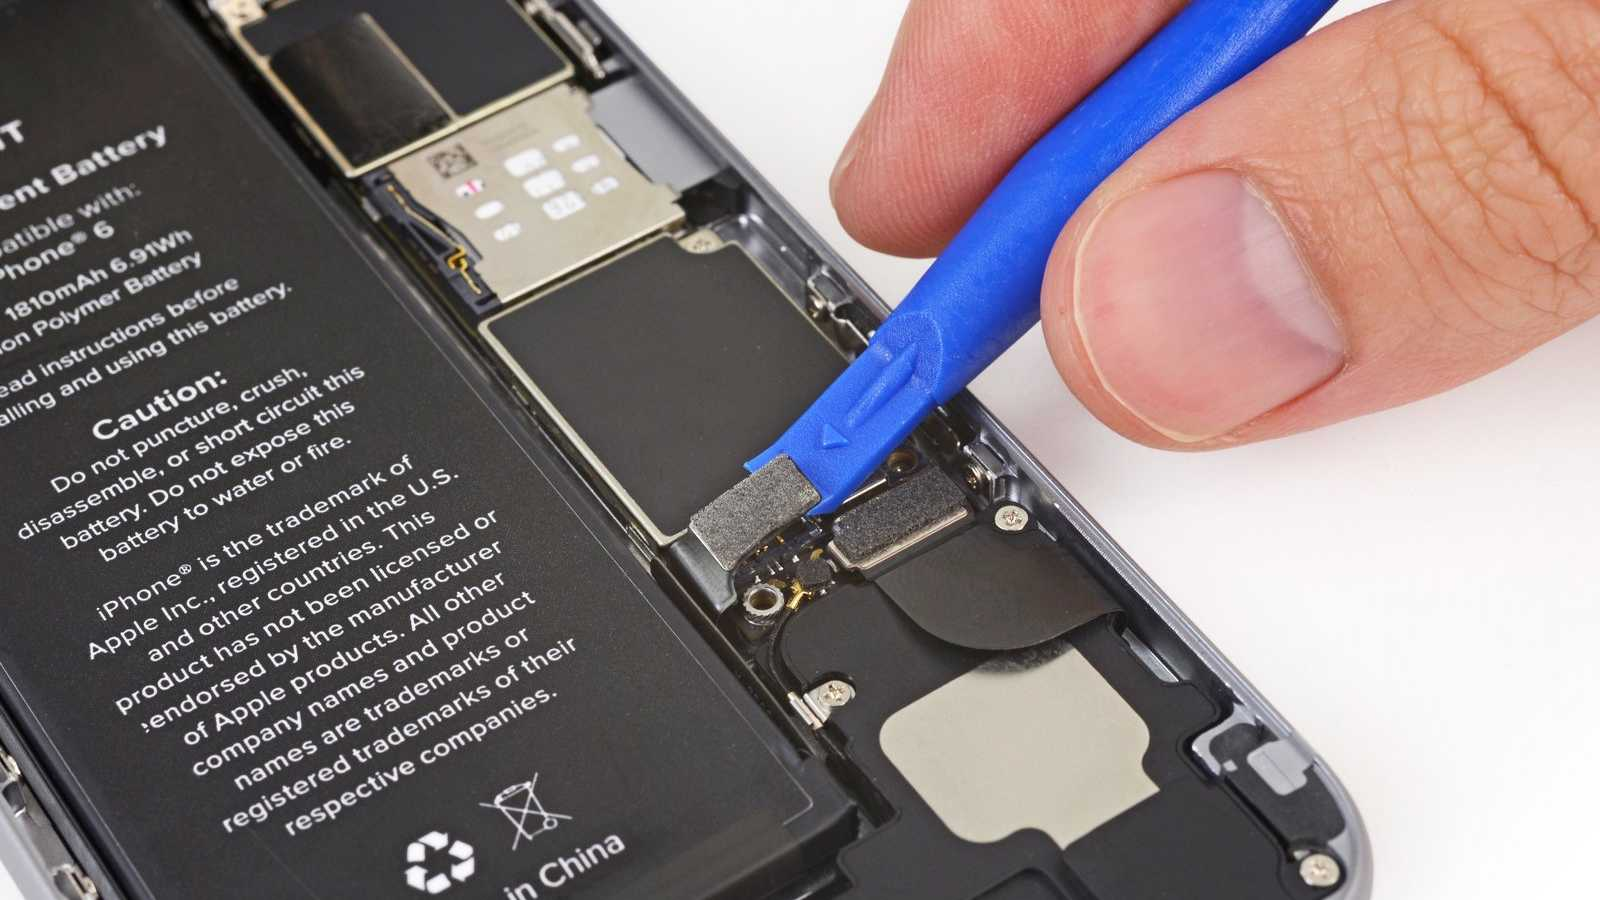 Disconnecting the battery inside an iPhone